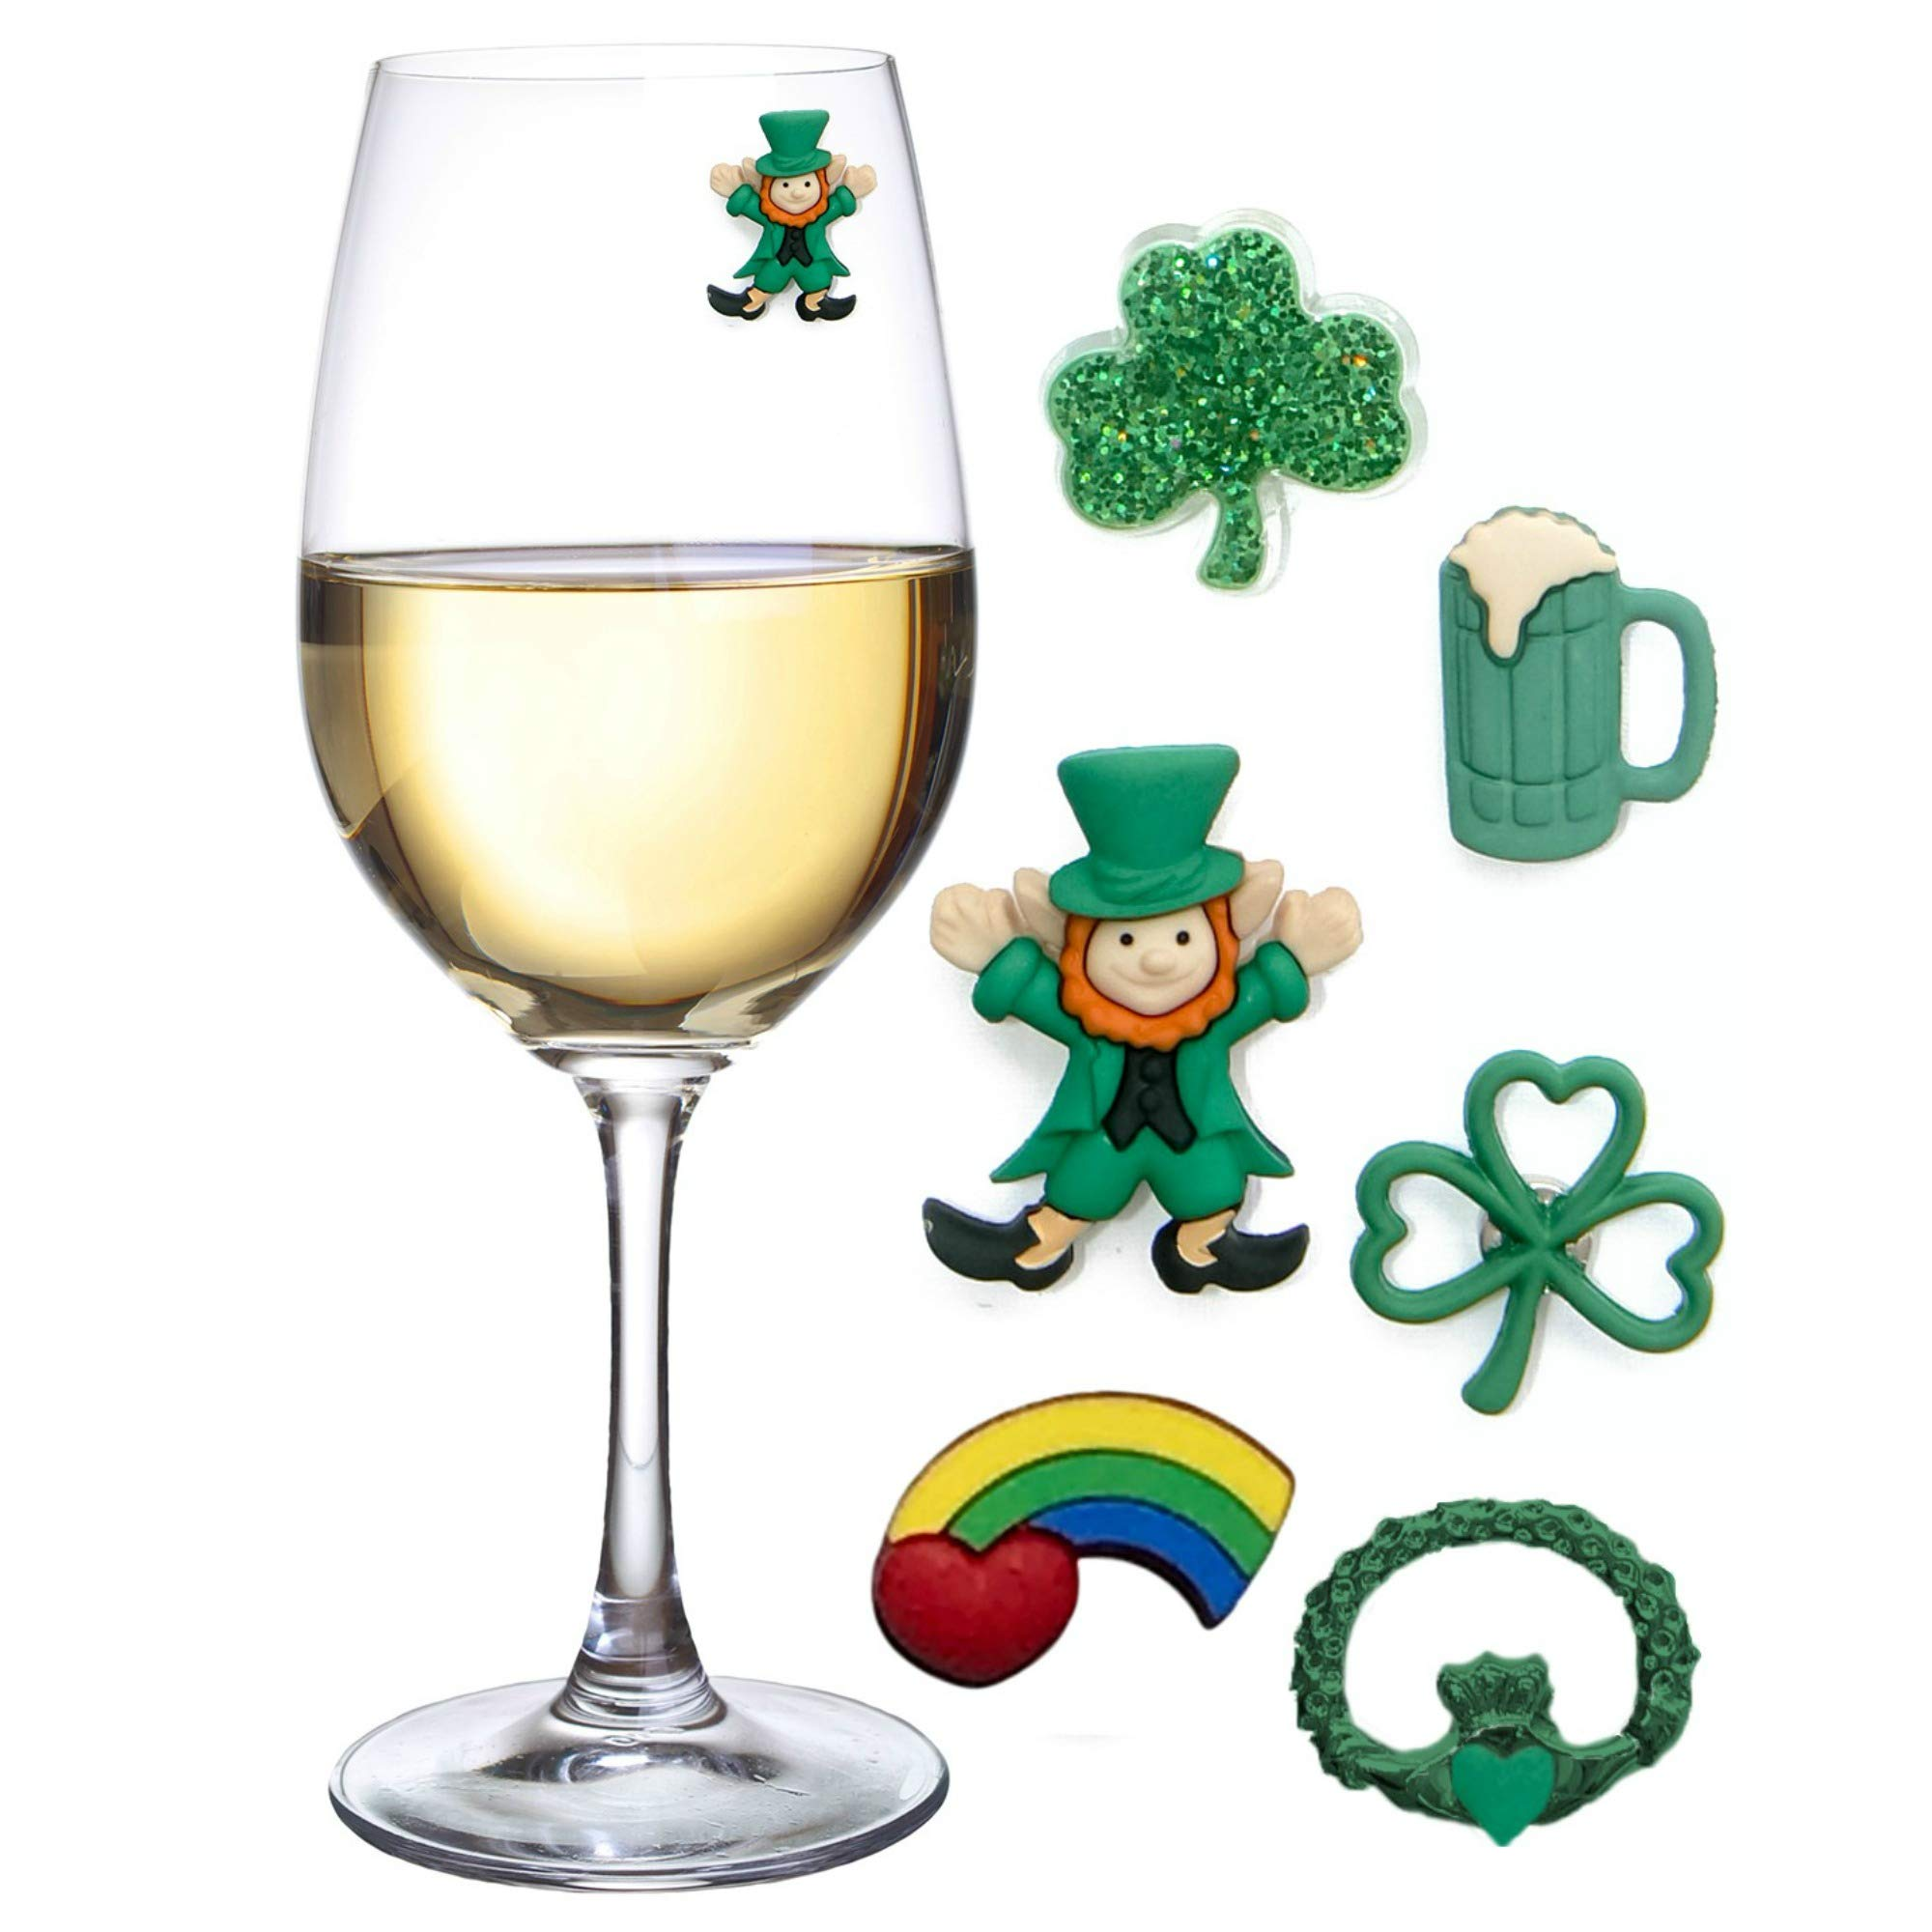 St Patricks Day Magnetic Drink Markers and Wine Charms for Stemless Glasses Beer Mugs or Cocktails Fun Decorations for a Party or Irish Gift Set of 6